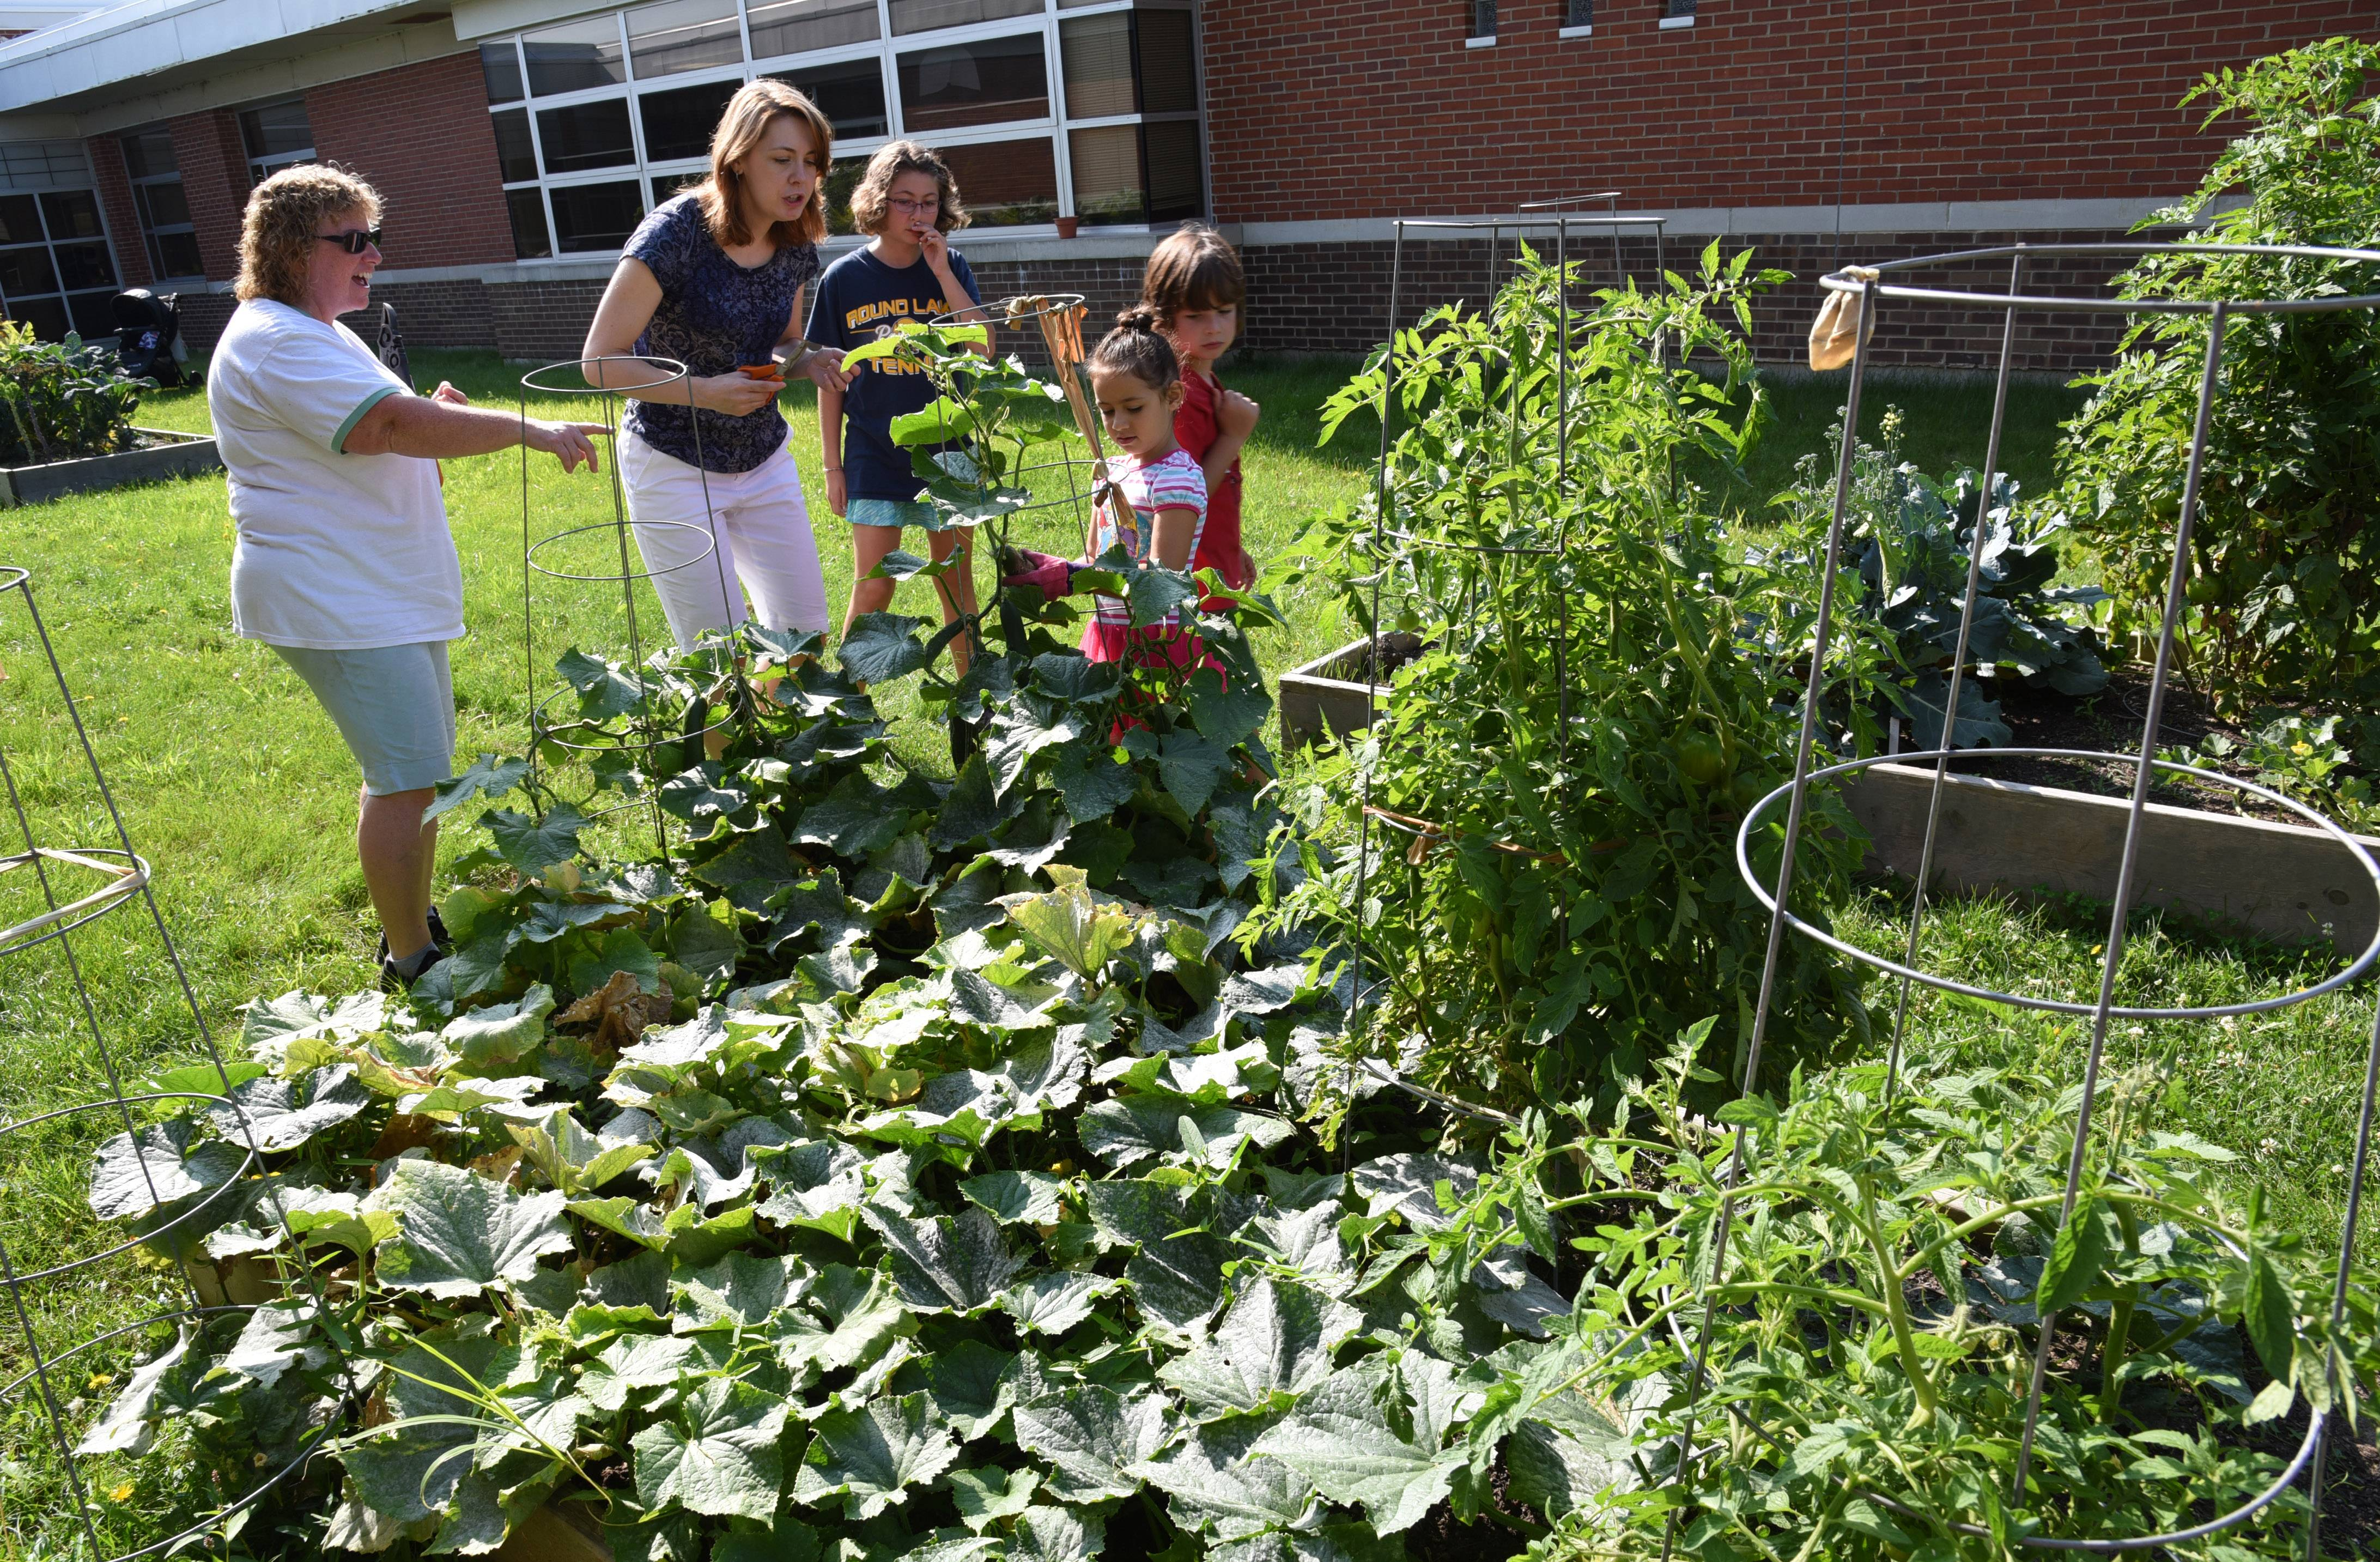 Lori Northup, Fremont Elementary School's healthy minds teacher, left, gets harvesting help from parent Anne Davis, left, and students Tessa Davis, Madisun Flores and Lee Davis at the school's gardens Tuesday in Mundelein.